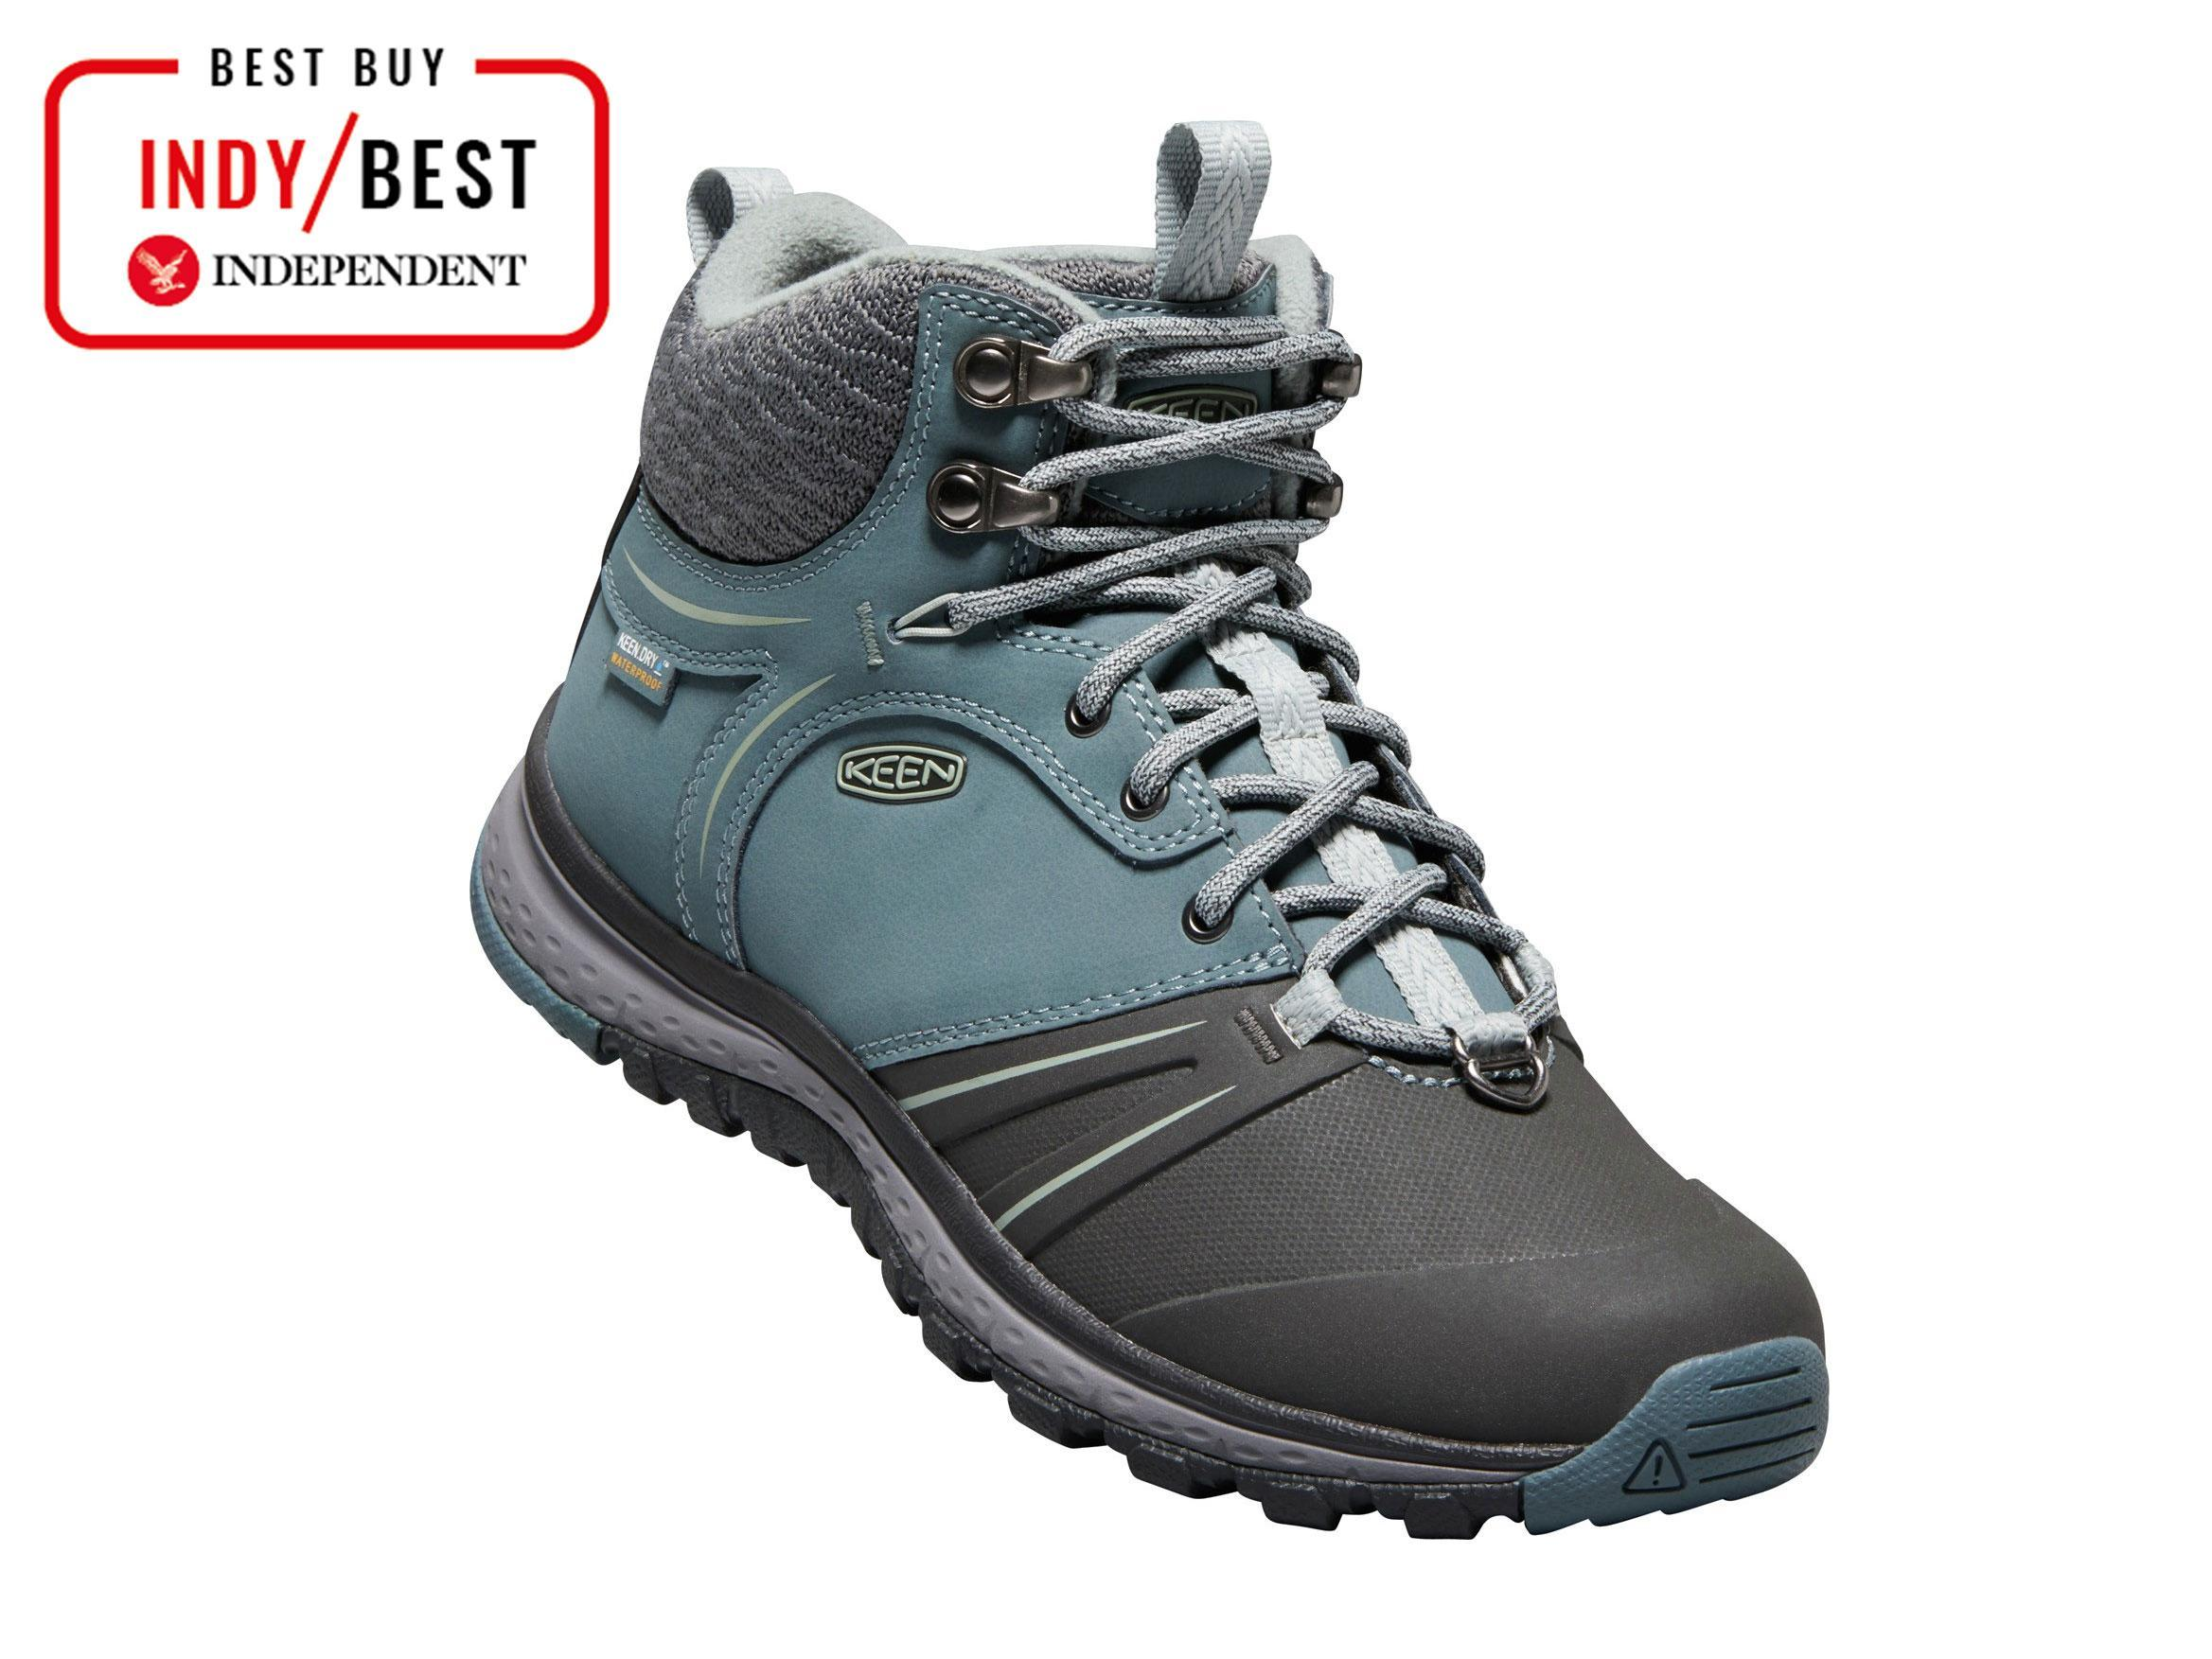 5d6b8b18cd715 10 best snow boots | The Independent